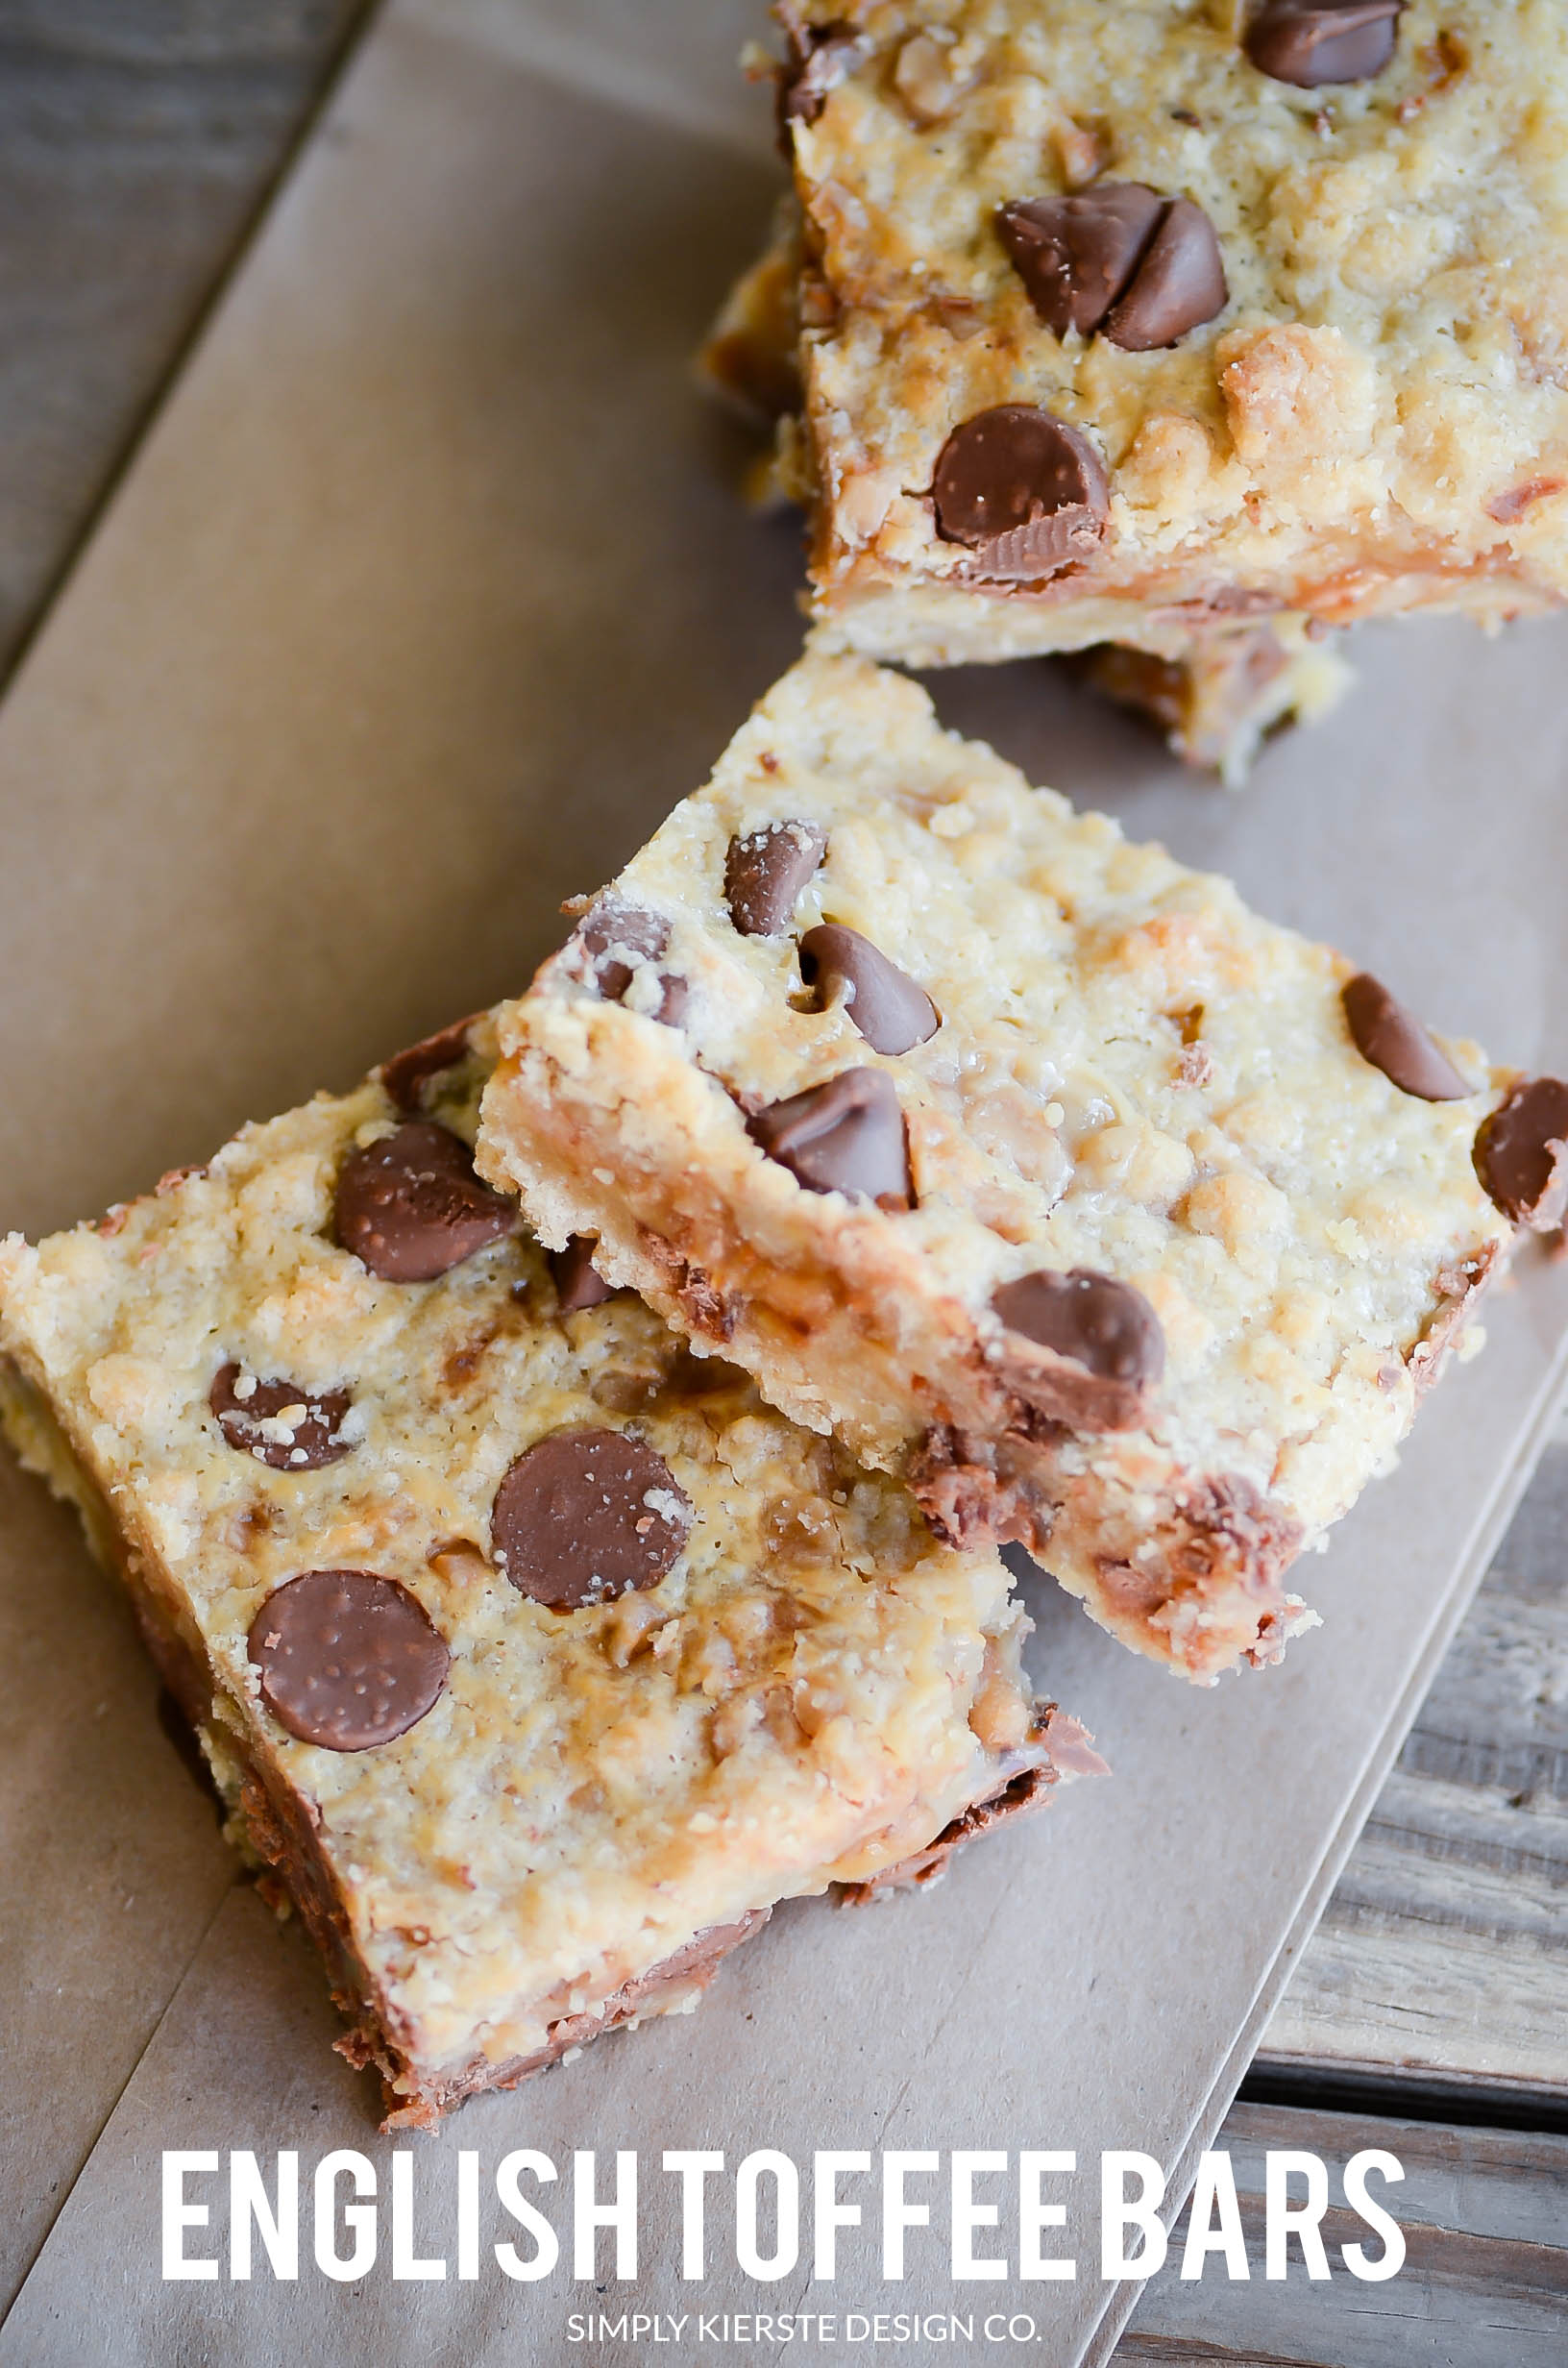 English Toffee Bars | simplykierste.com #cookiebars #easydesserts #dessertbars #chocolatechips